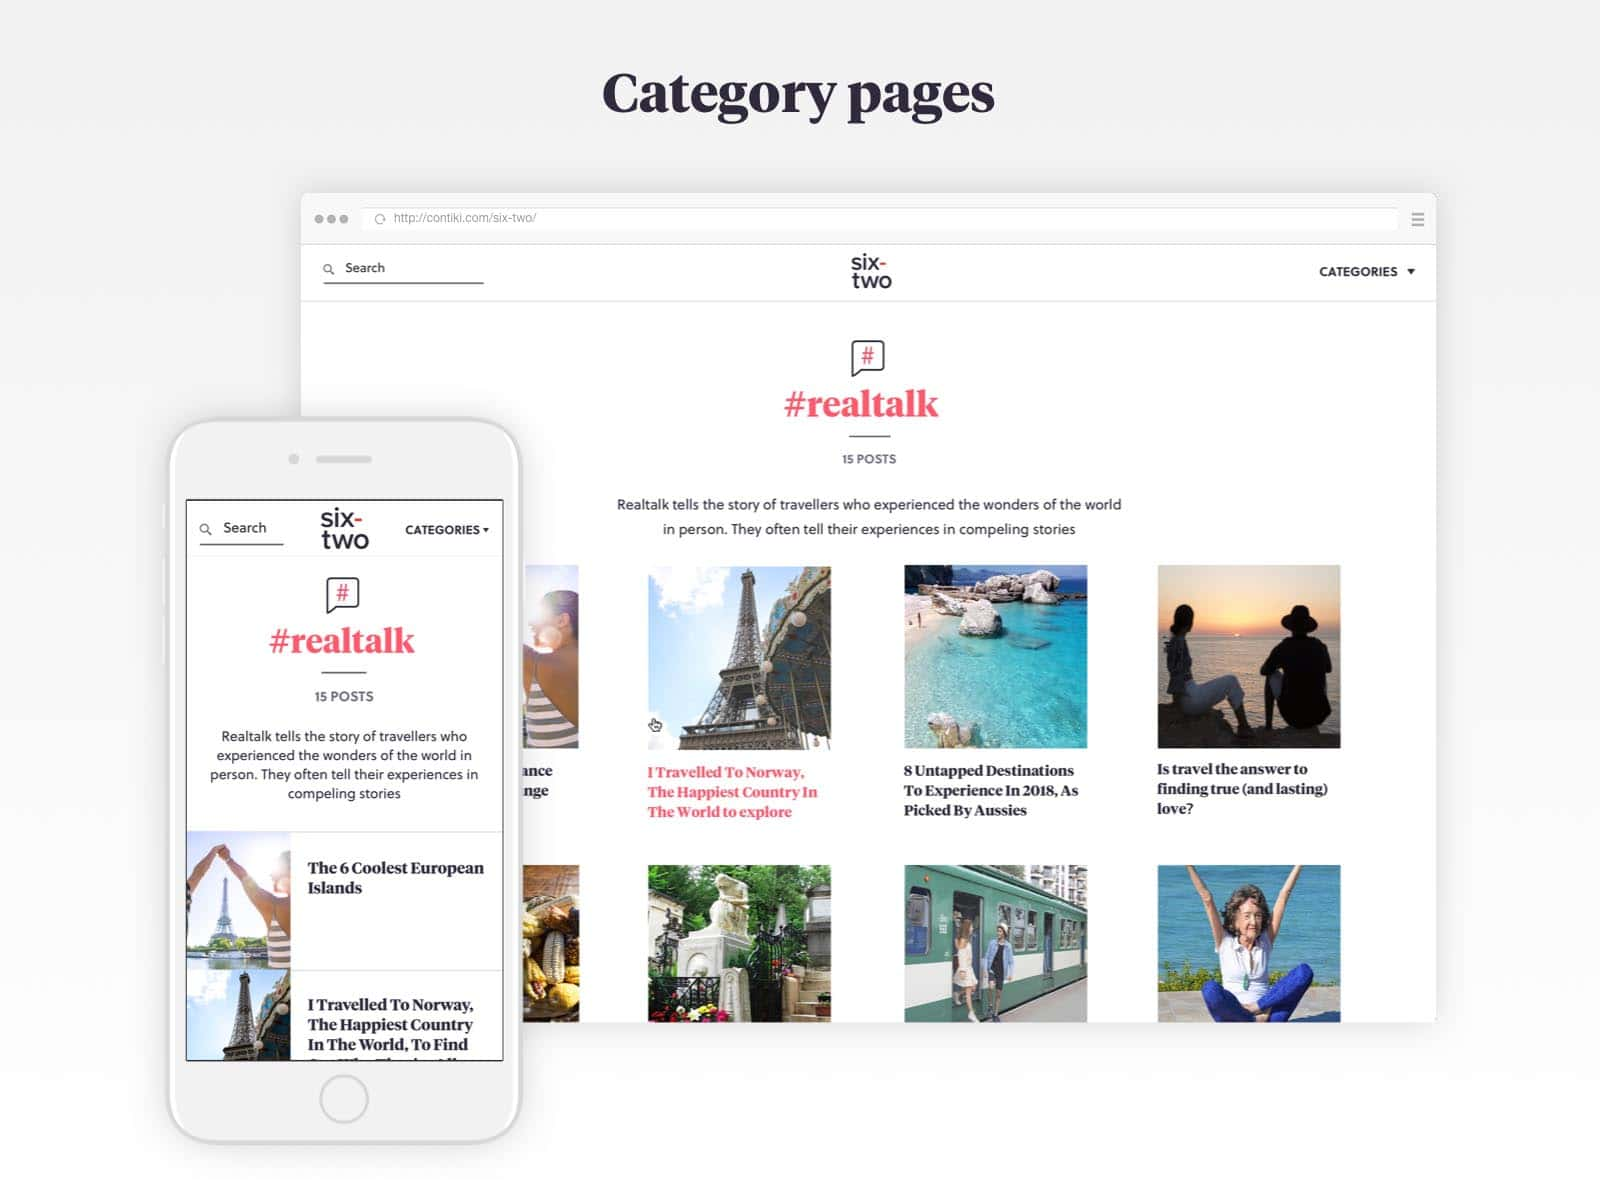 six-two category pages